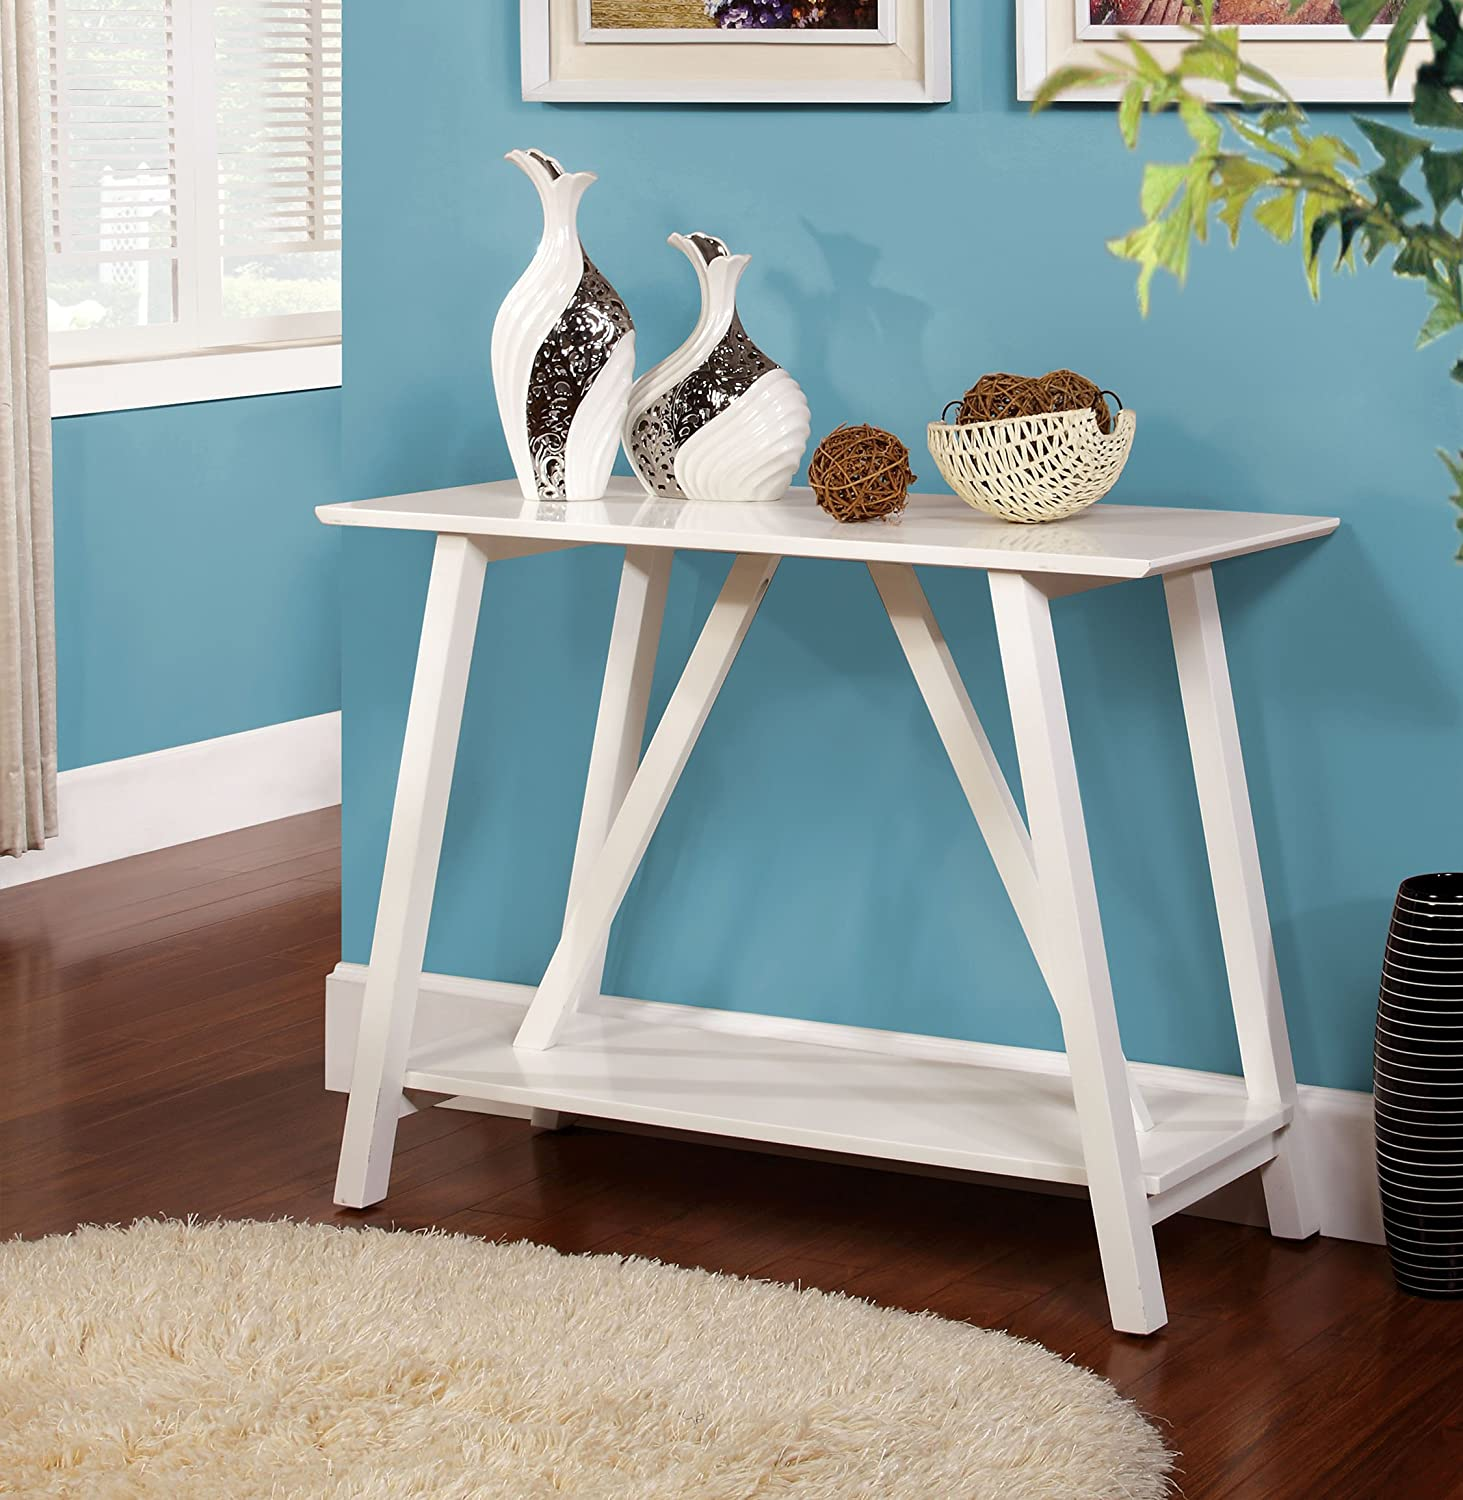 furniture living occasional set console from table room vintage rustic tables